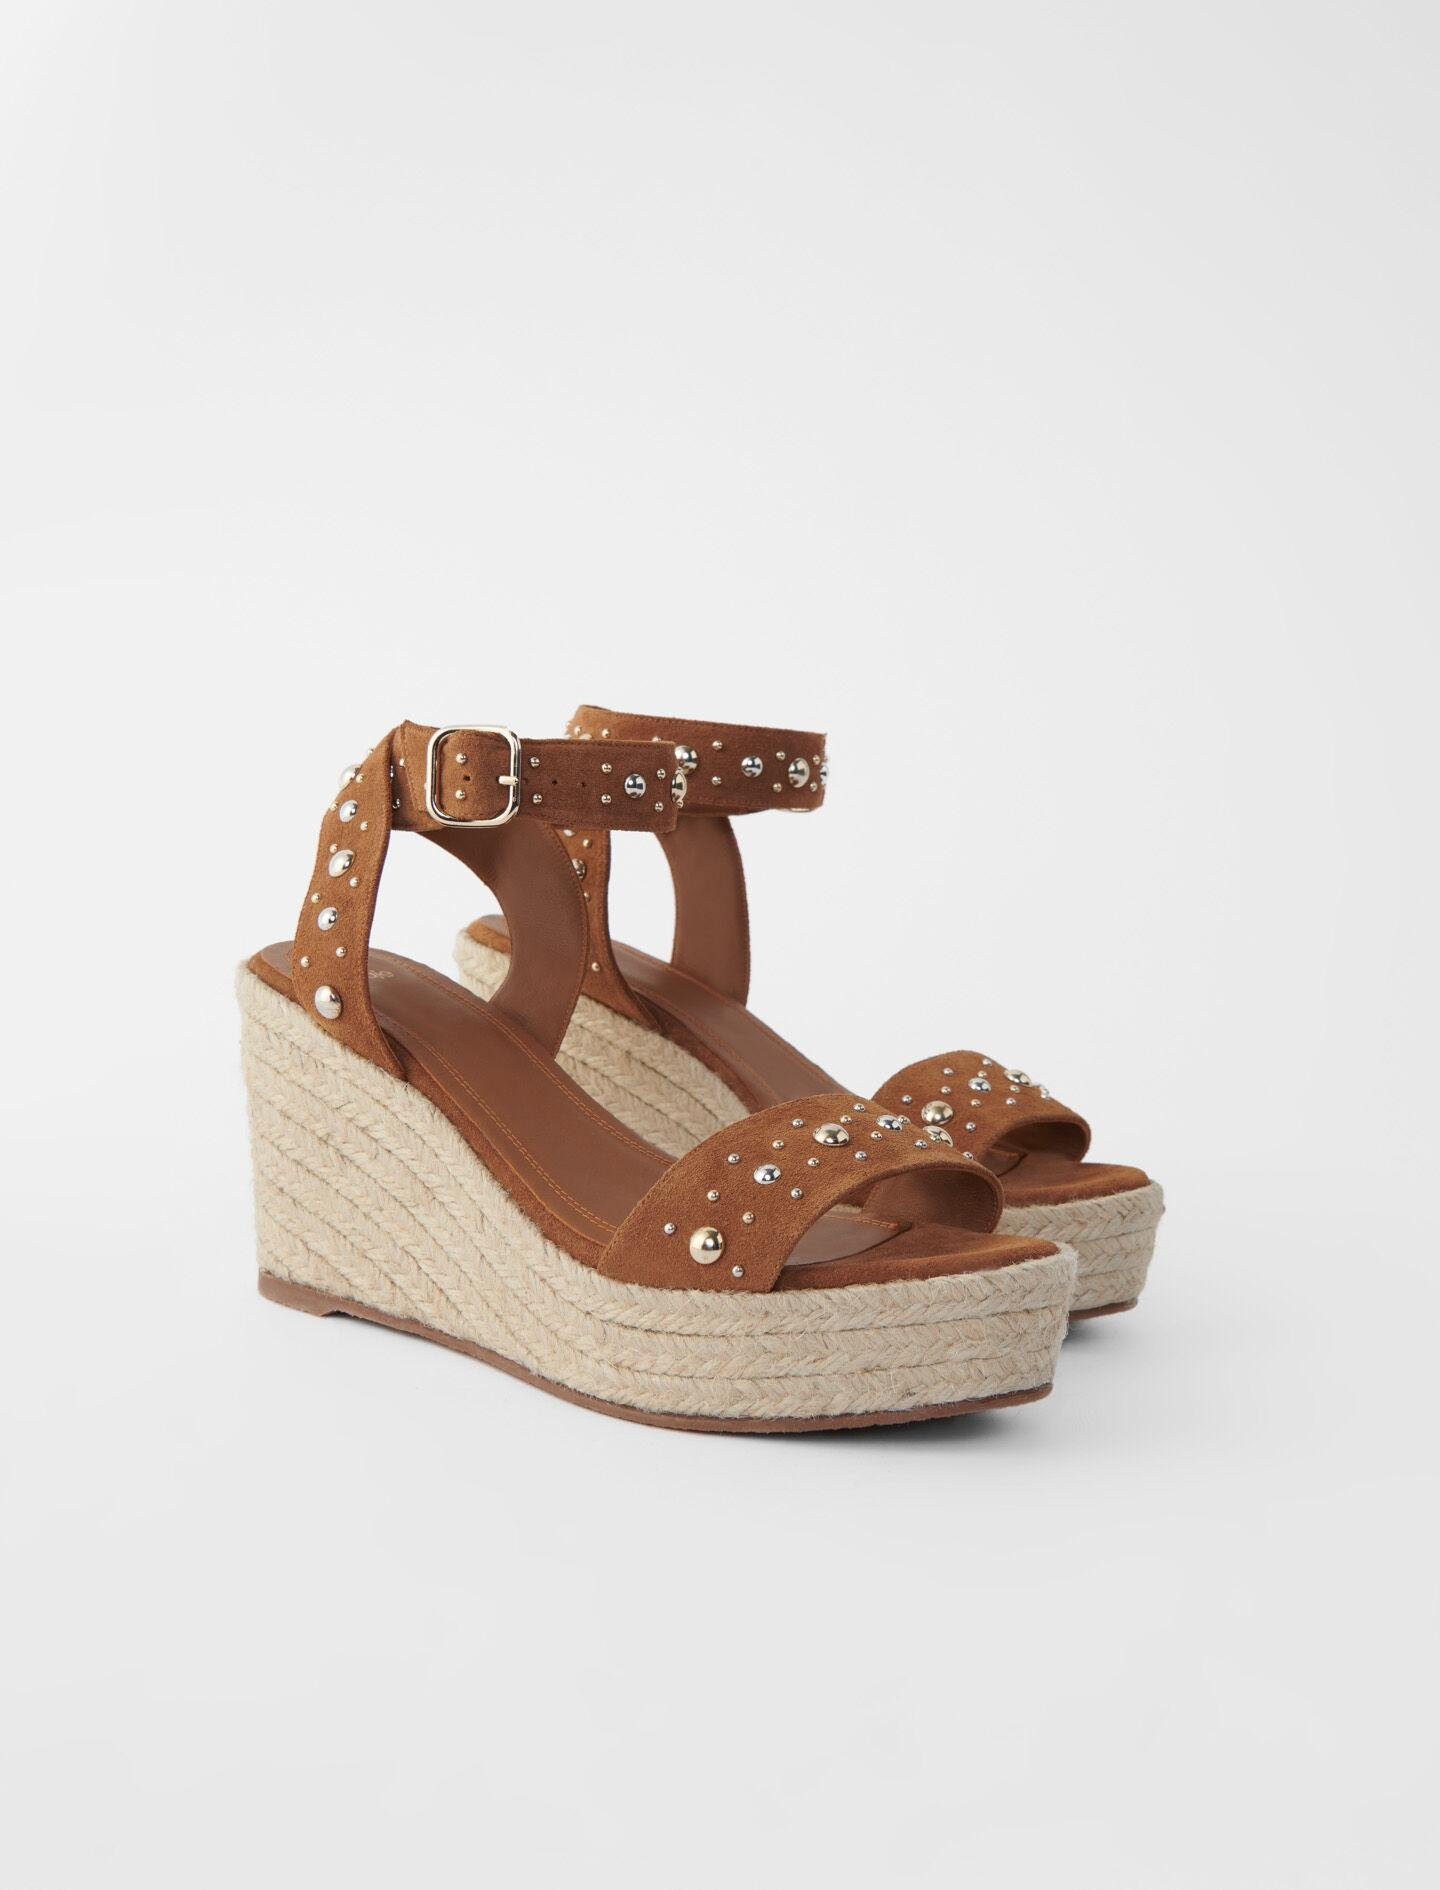 WEDGE SANDALS WITH SUEDE STRAPS 1